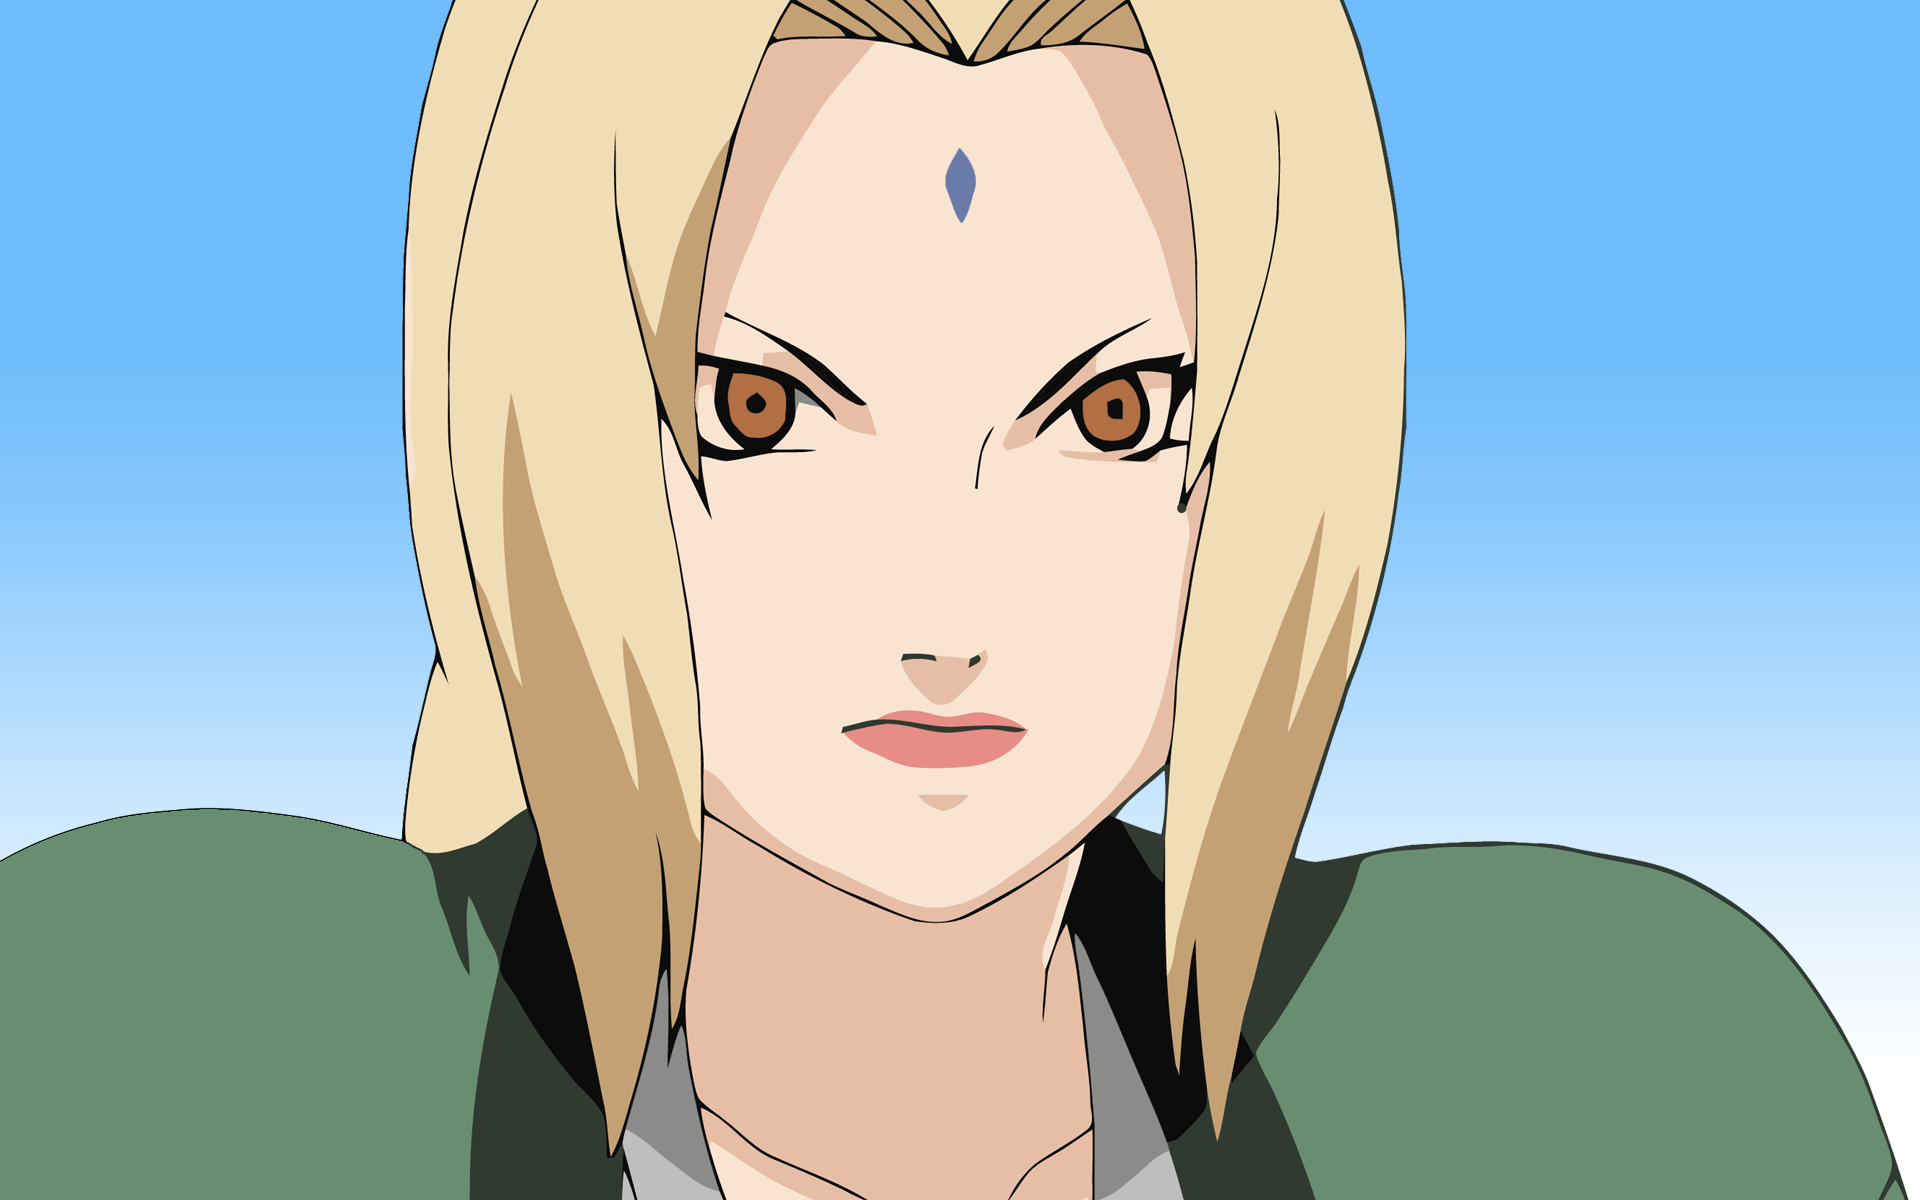 Download Tsunade Naruto Wallpaper 1920x1200 Wallpoper 1920x1200